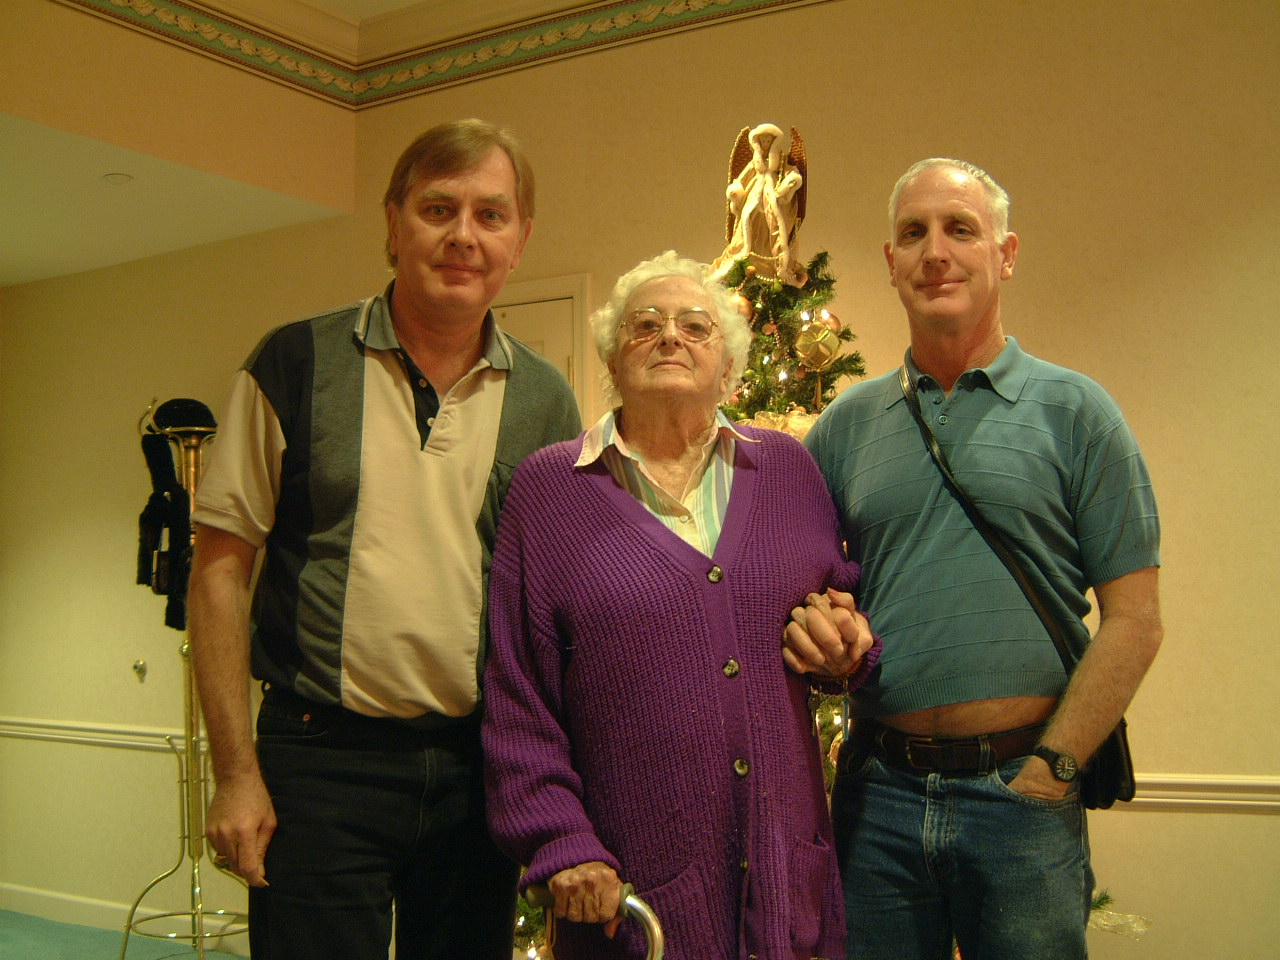 Gary and Steven Gates with our Aunt Margaret, November 2002